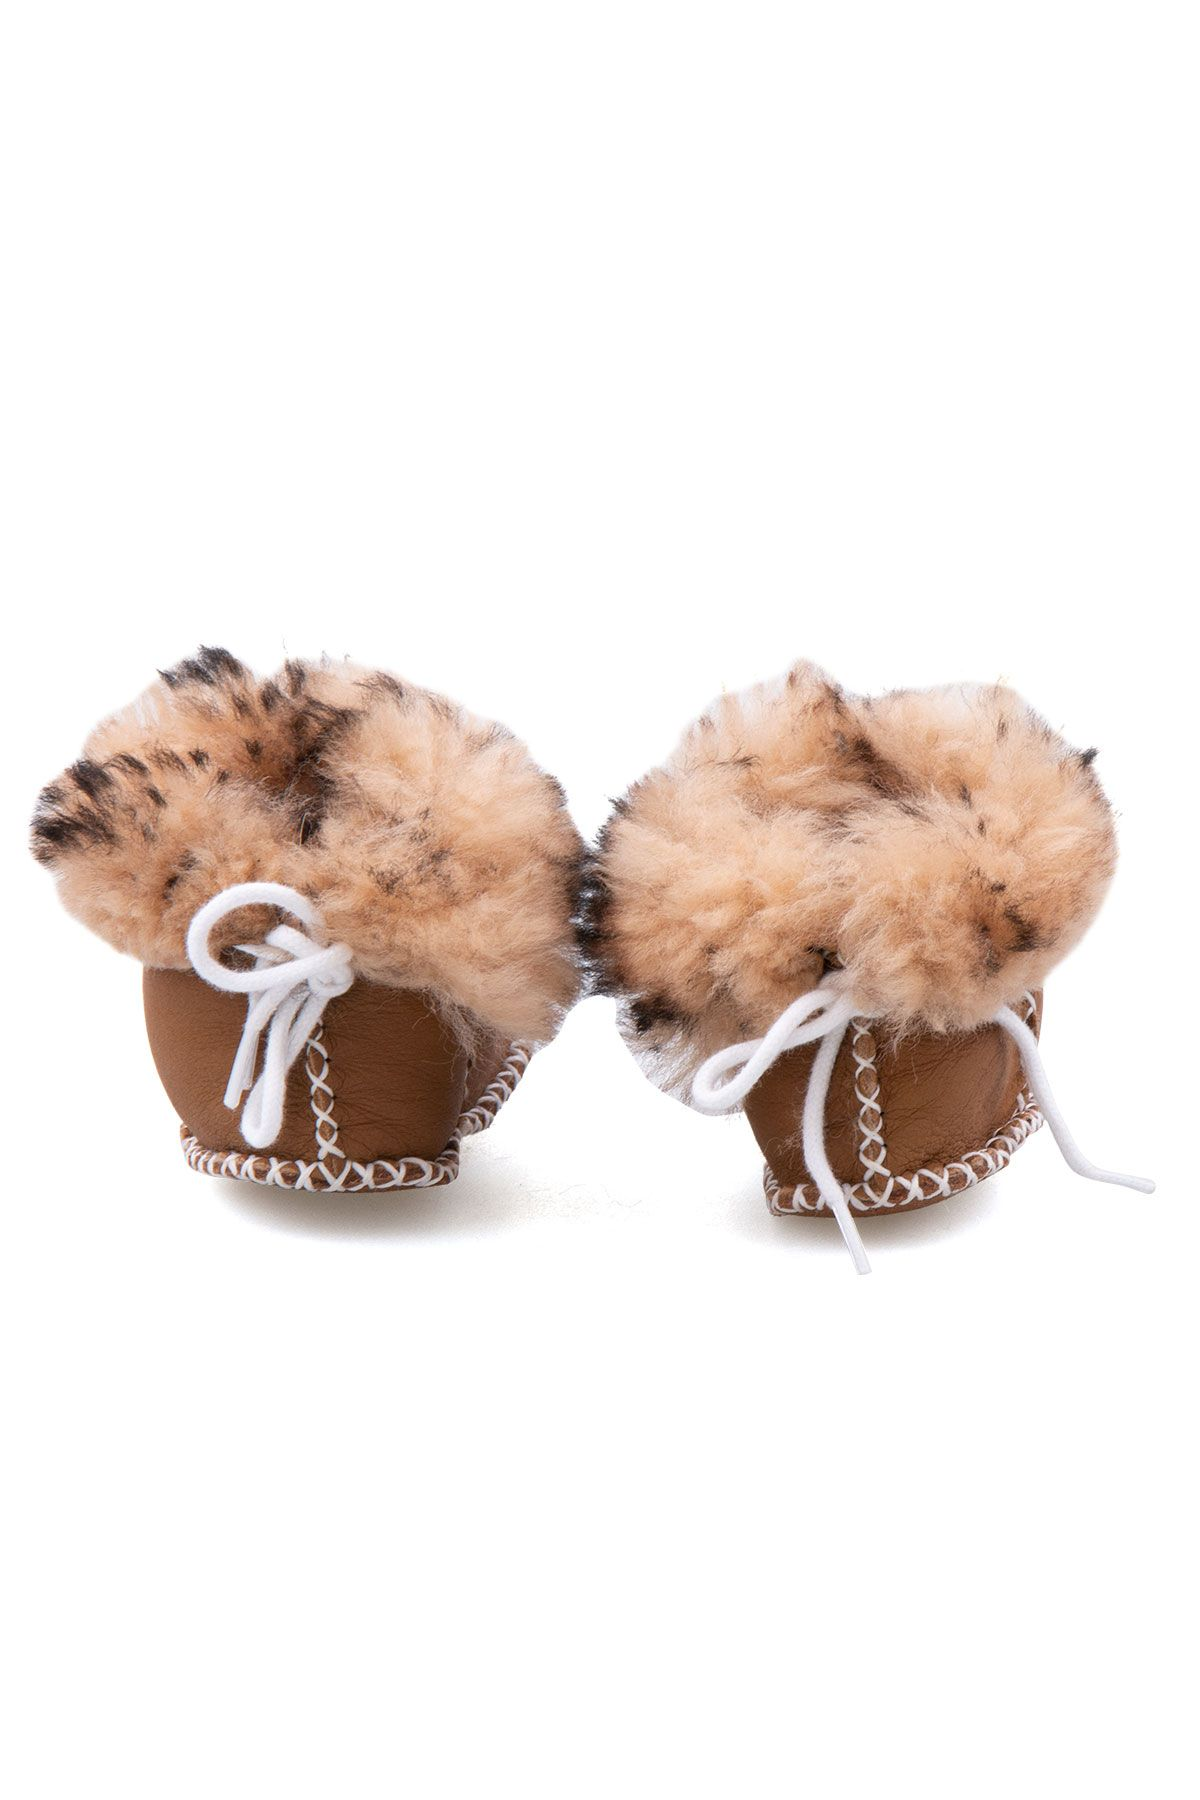 Pegia Shearling Baby's Booties 141113 Brown